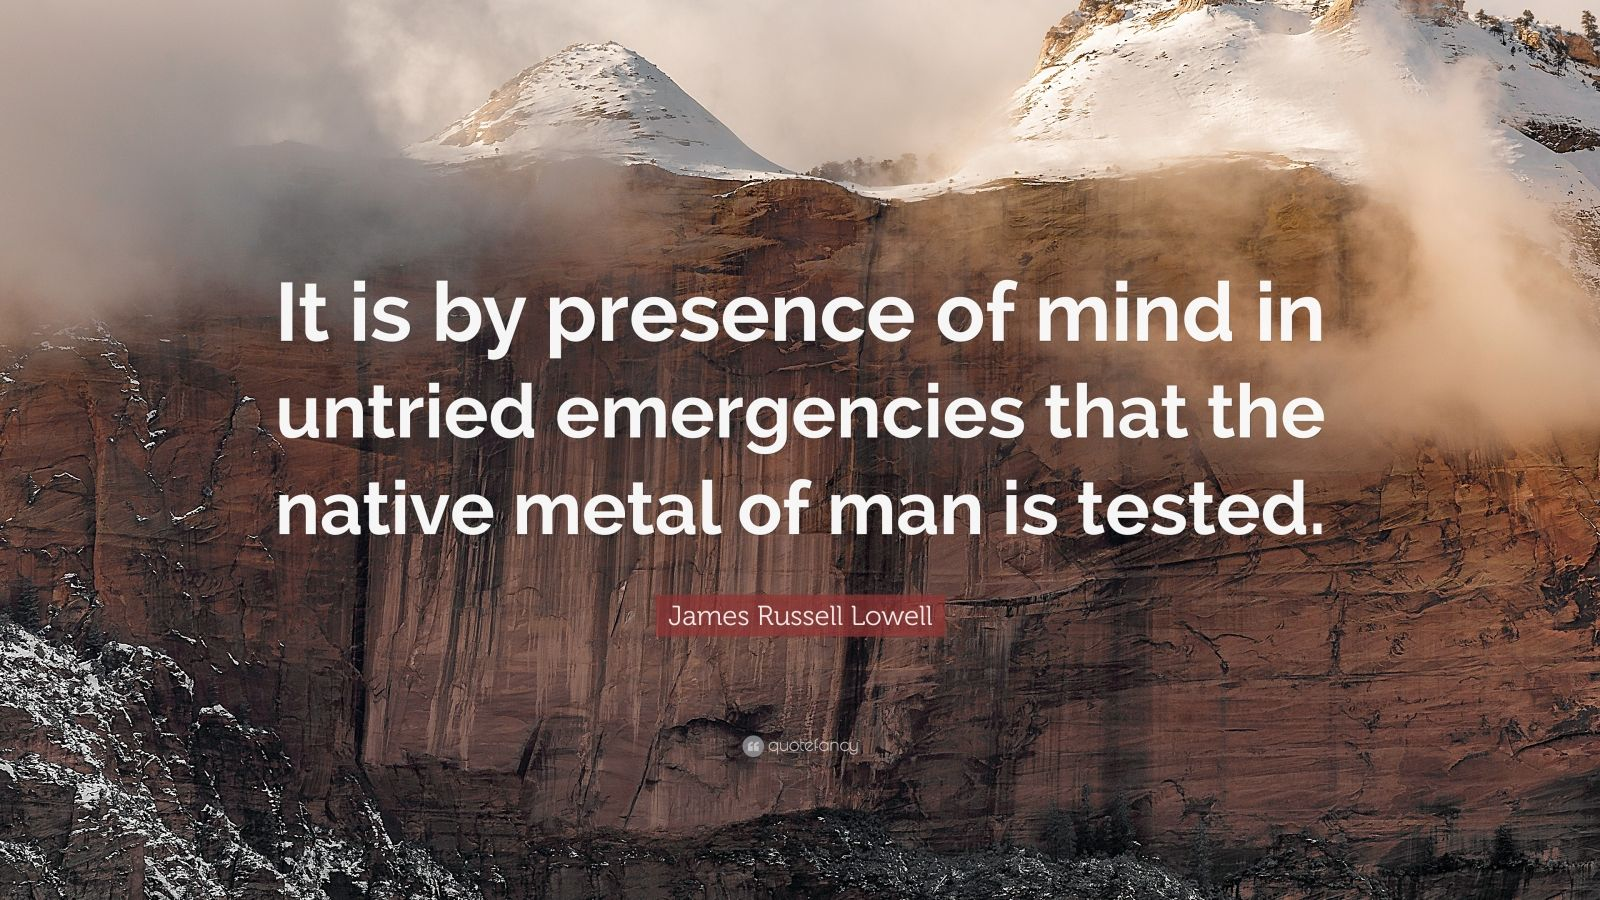 """James Russell Lowell Quote: """"It is by presence of mind in untried emergencies that the native metal of man is tested."""""""